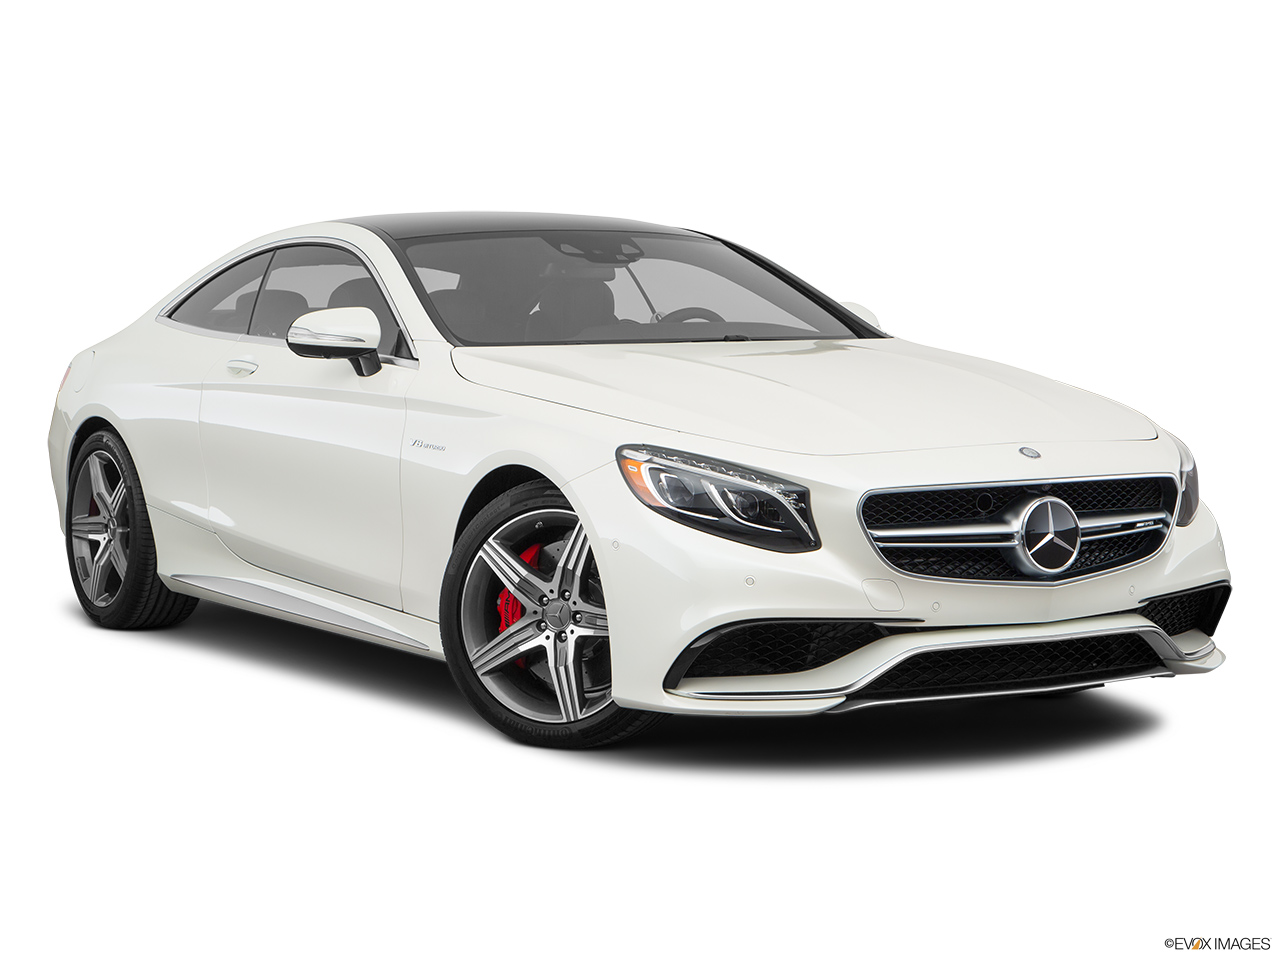 Car pictures list for mercedes benz s 63 amg coupe 2018 5 for Mercedes benz coupes list